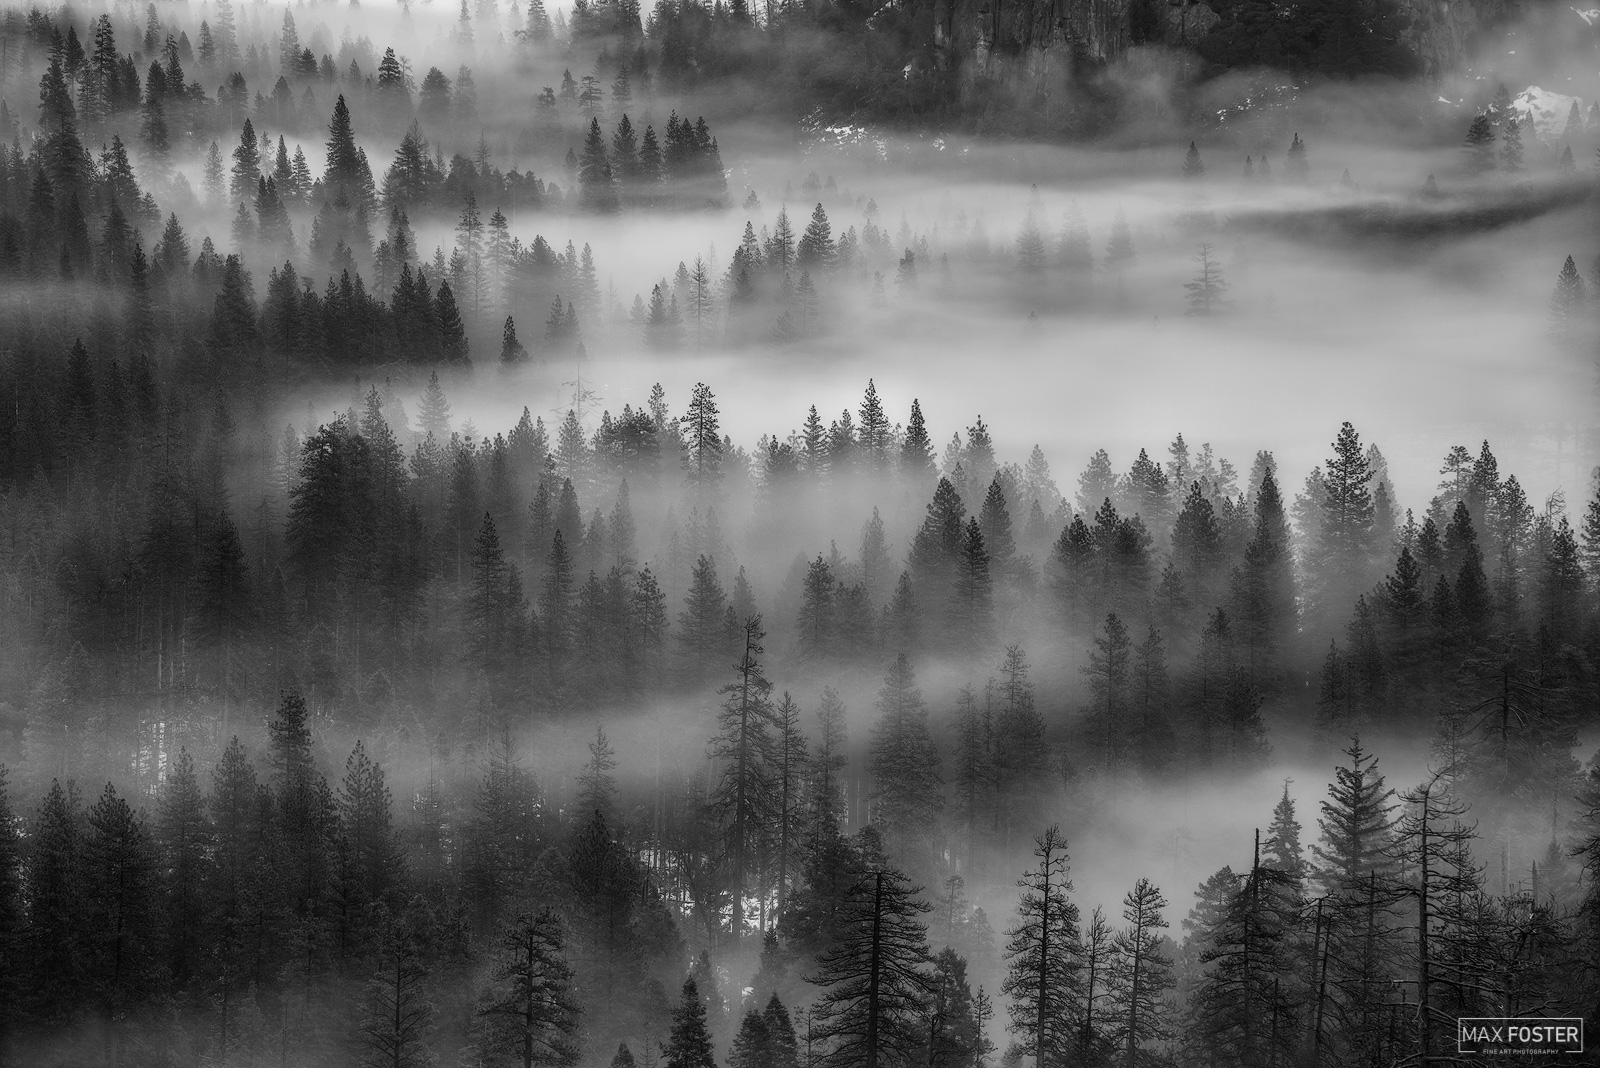 Fine Art Limited Edition of 50 The black and white or monochrome version of Whispering Pines, taken at Yosemite National Park...